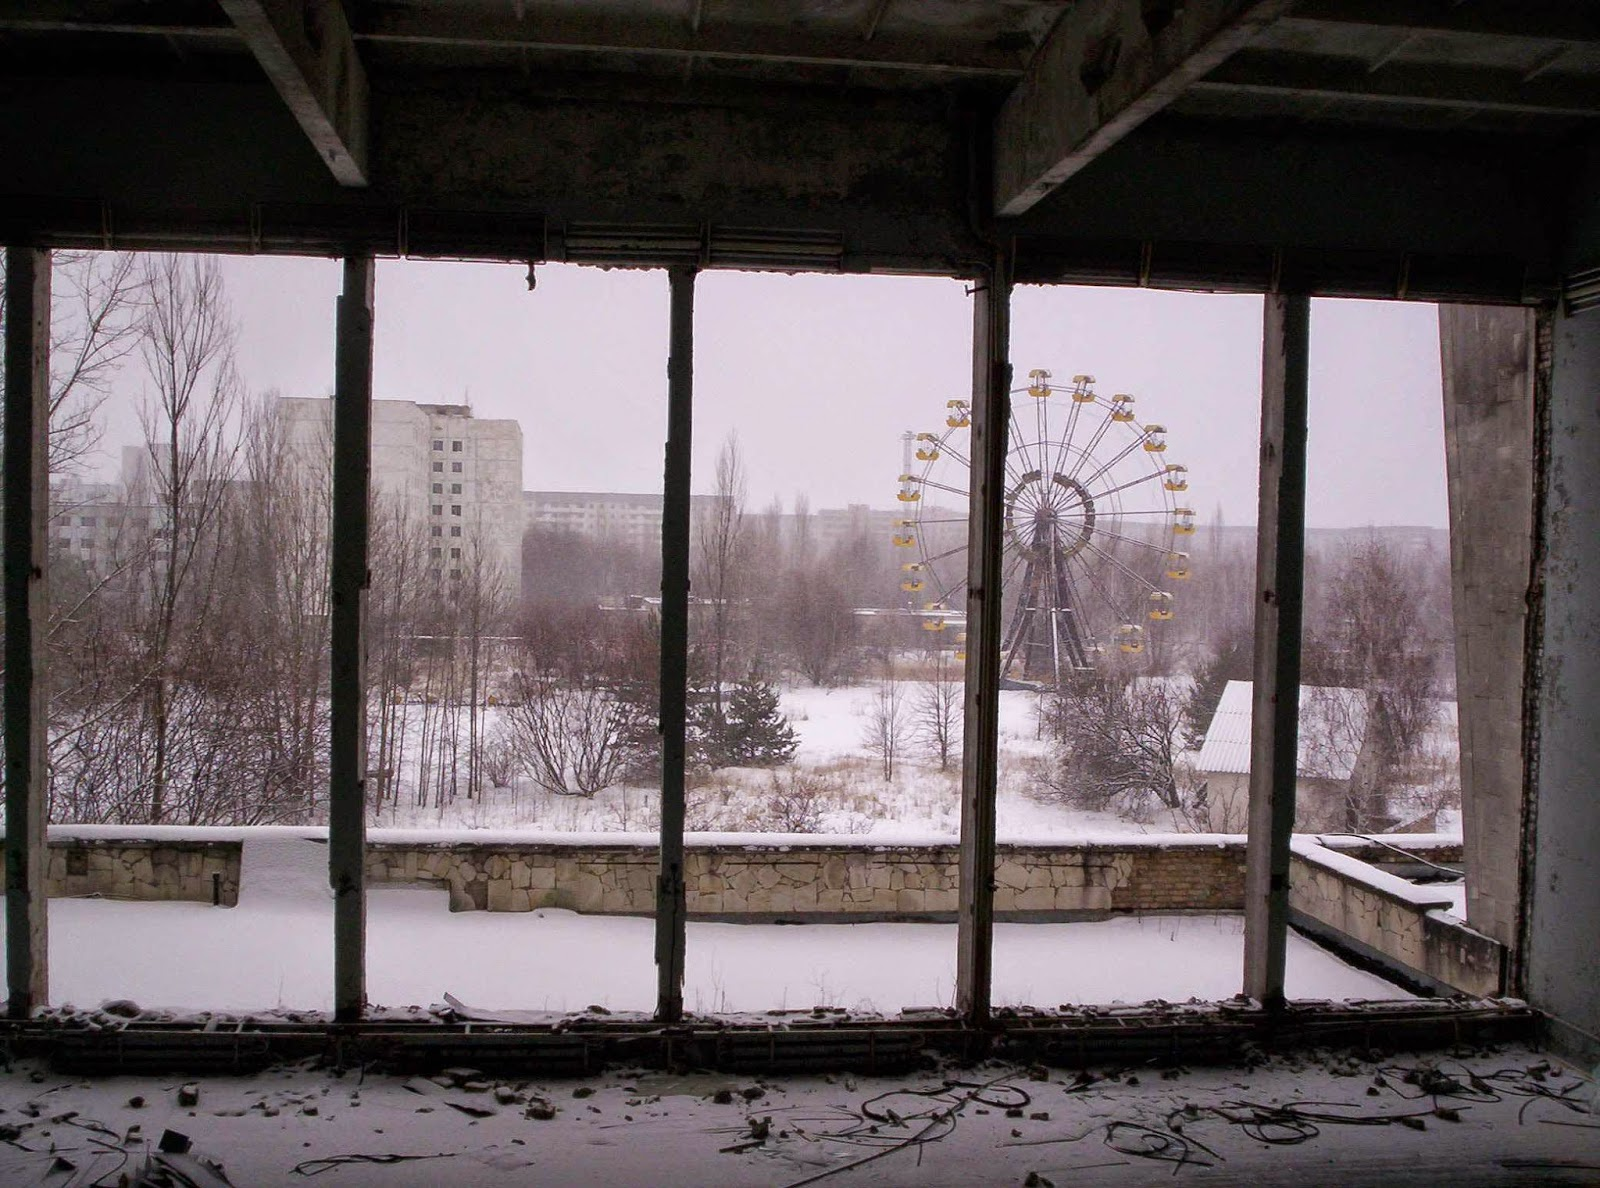 http://allday.com/post/935-pripyat-amusement-park-where-the-ghosts-of-chernobyl-play